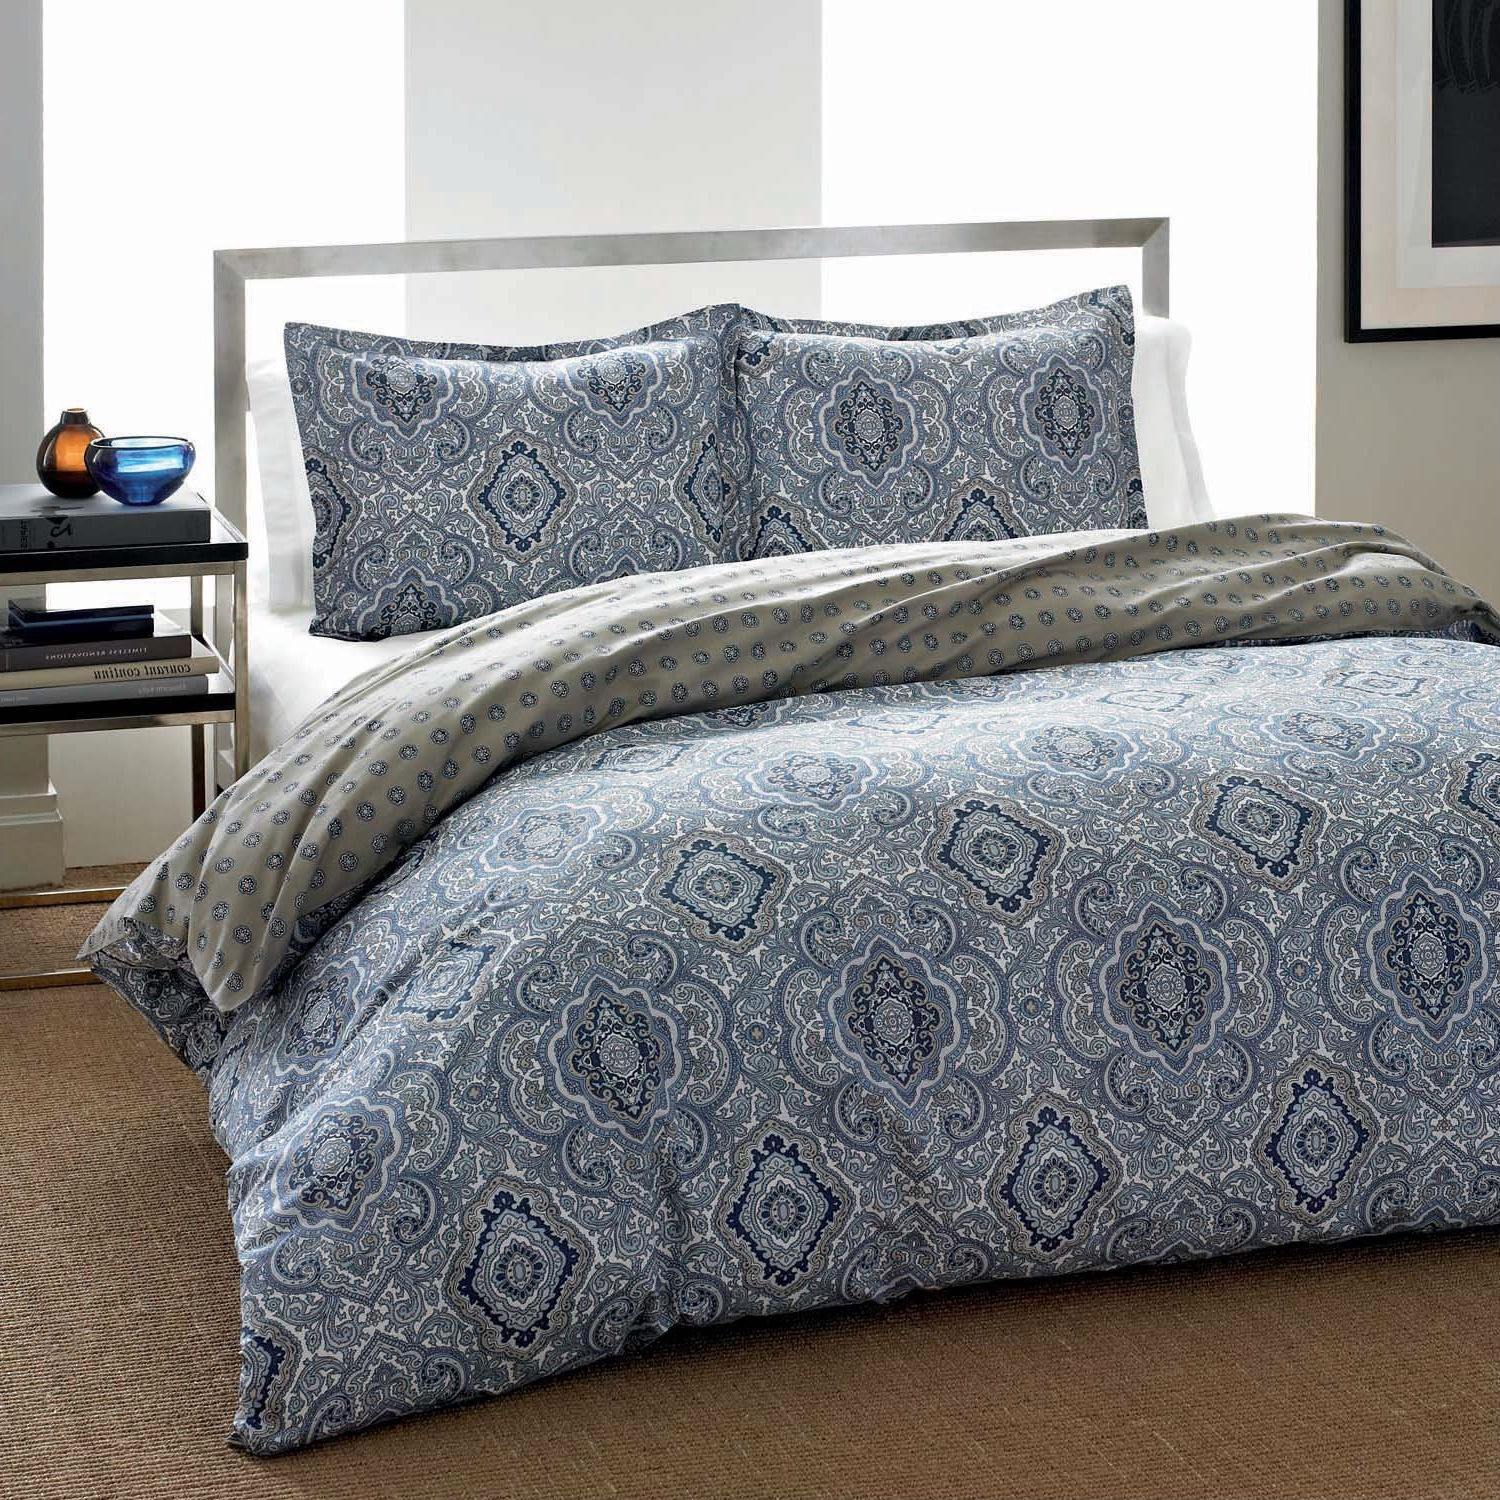 King 3 Piece Cotton Comforter Set With Blue Grey Damask Pattern